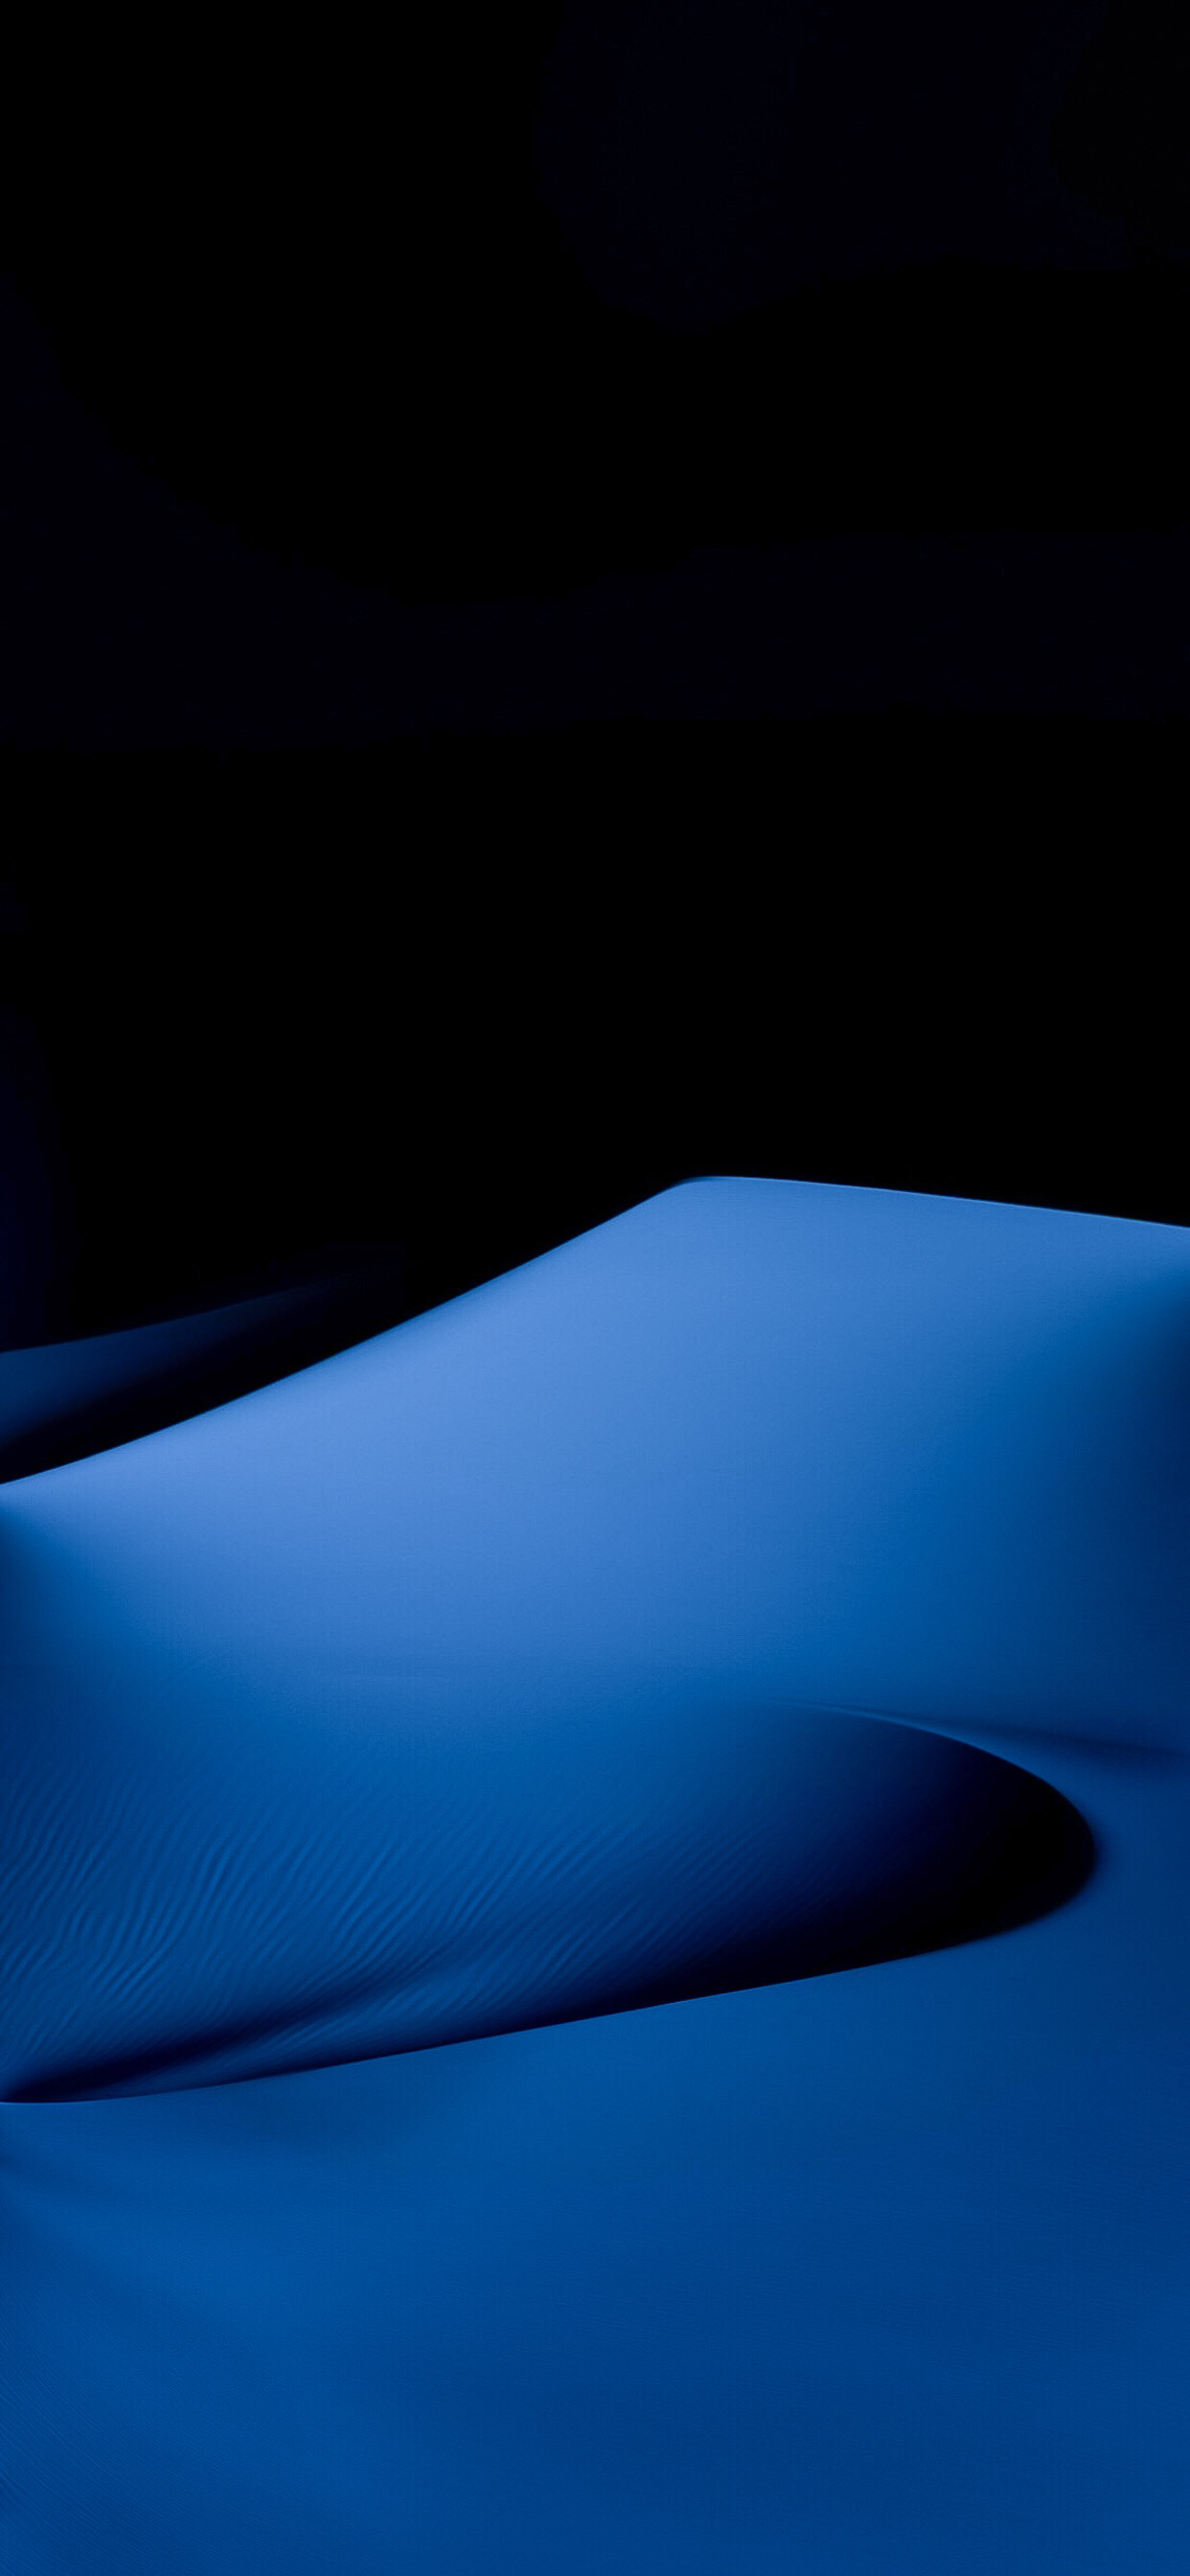 iPhone wallpapers mojave colors blue Mojave colors